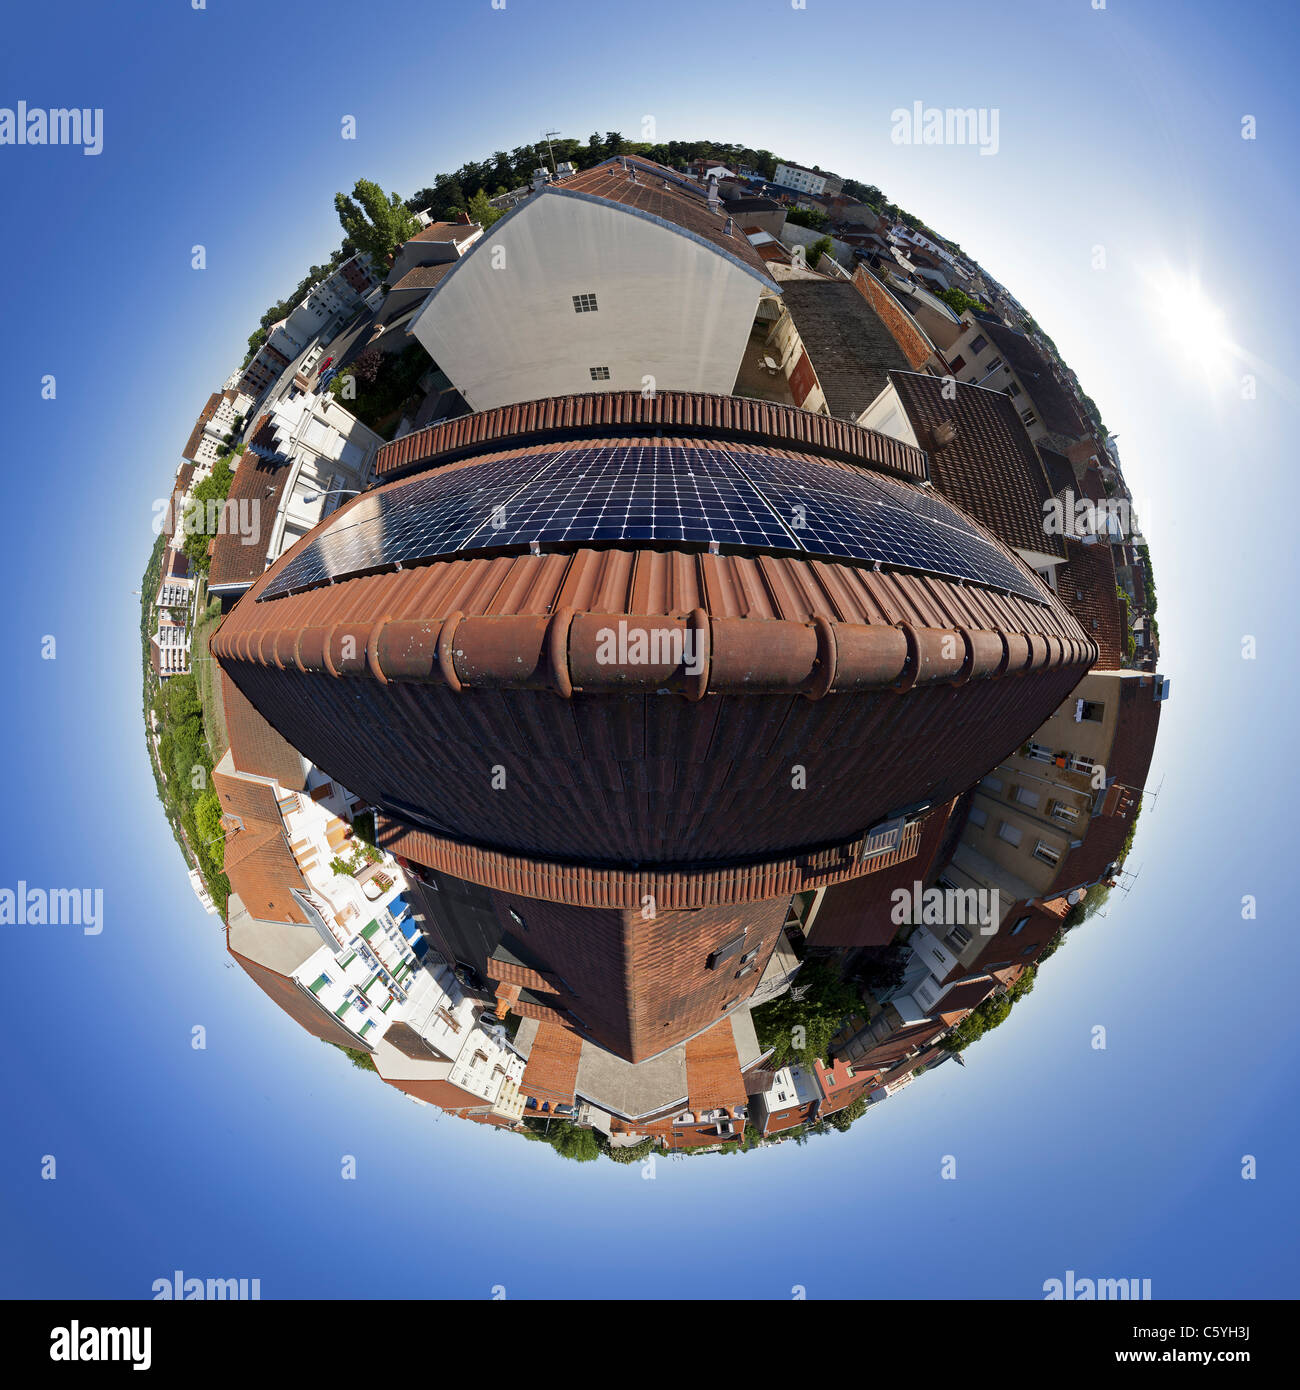 Photovoltaic solar panels on the roof of a private house. Fisheye view 360 °. - Stock Image